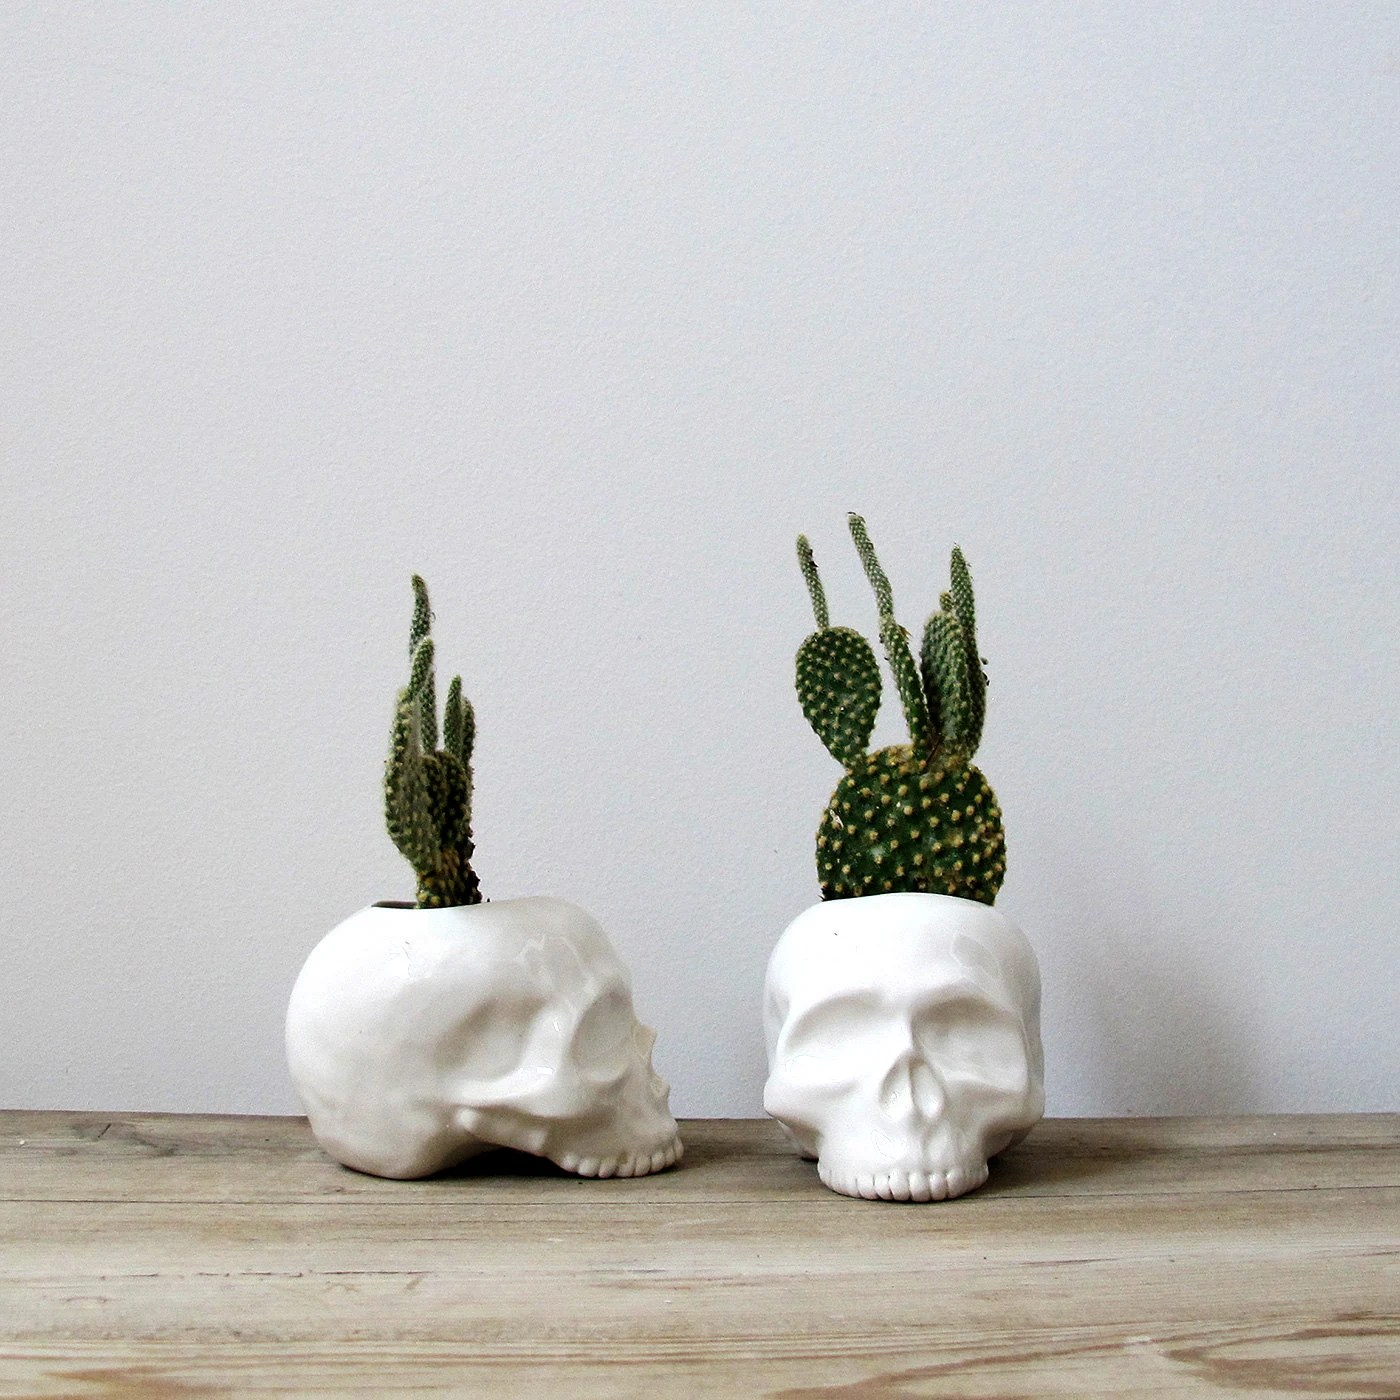 Cactus Planters Pottery Ceramic Skull Planter Perfect For Cactus Succulent Or Air